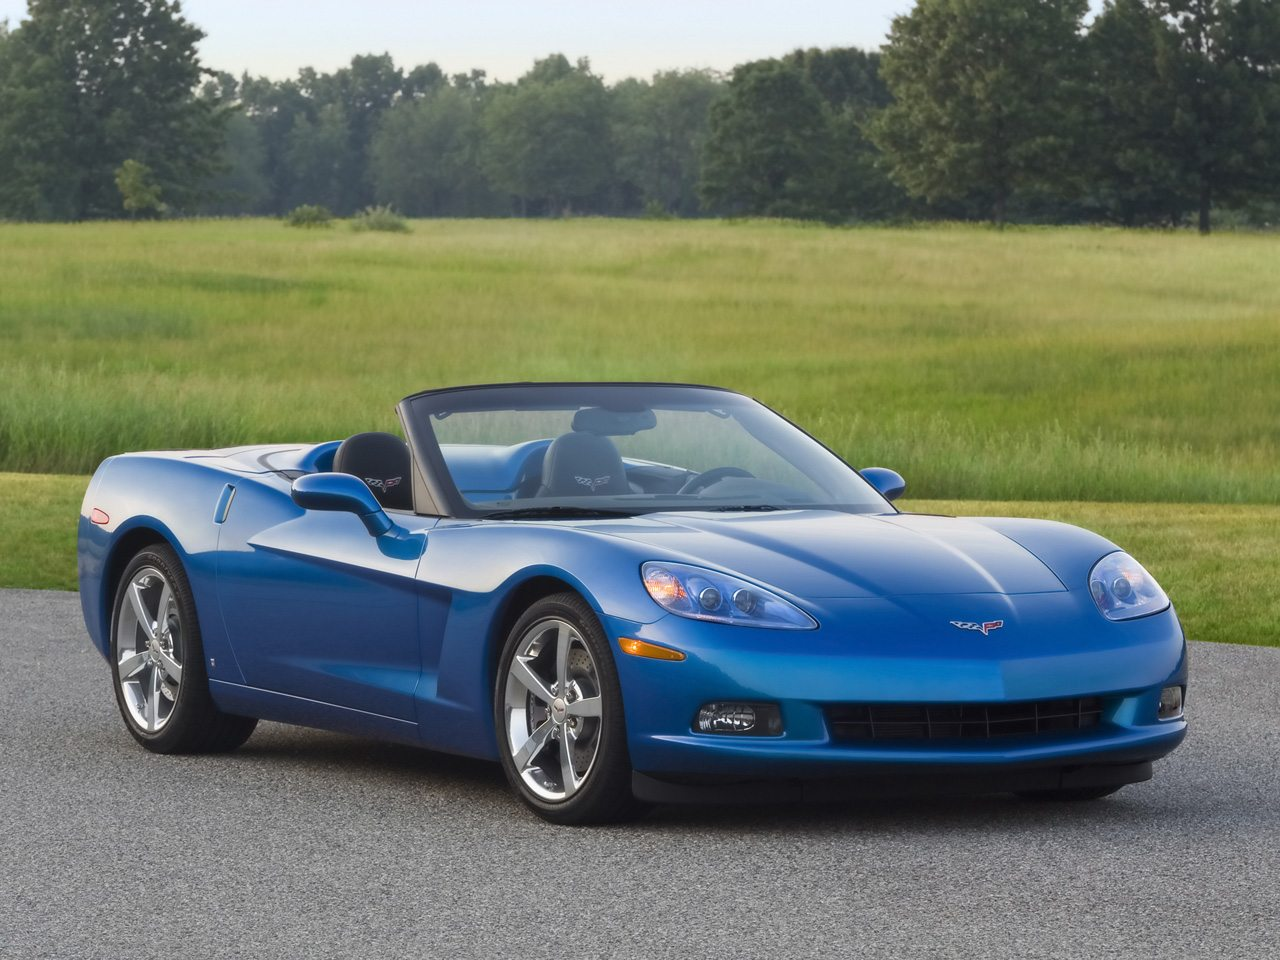 2009 c6 corvette ultimate guide overview specs vin info performance more. Black Bedroom Furniture Sets. Home Design Ideas